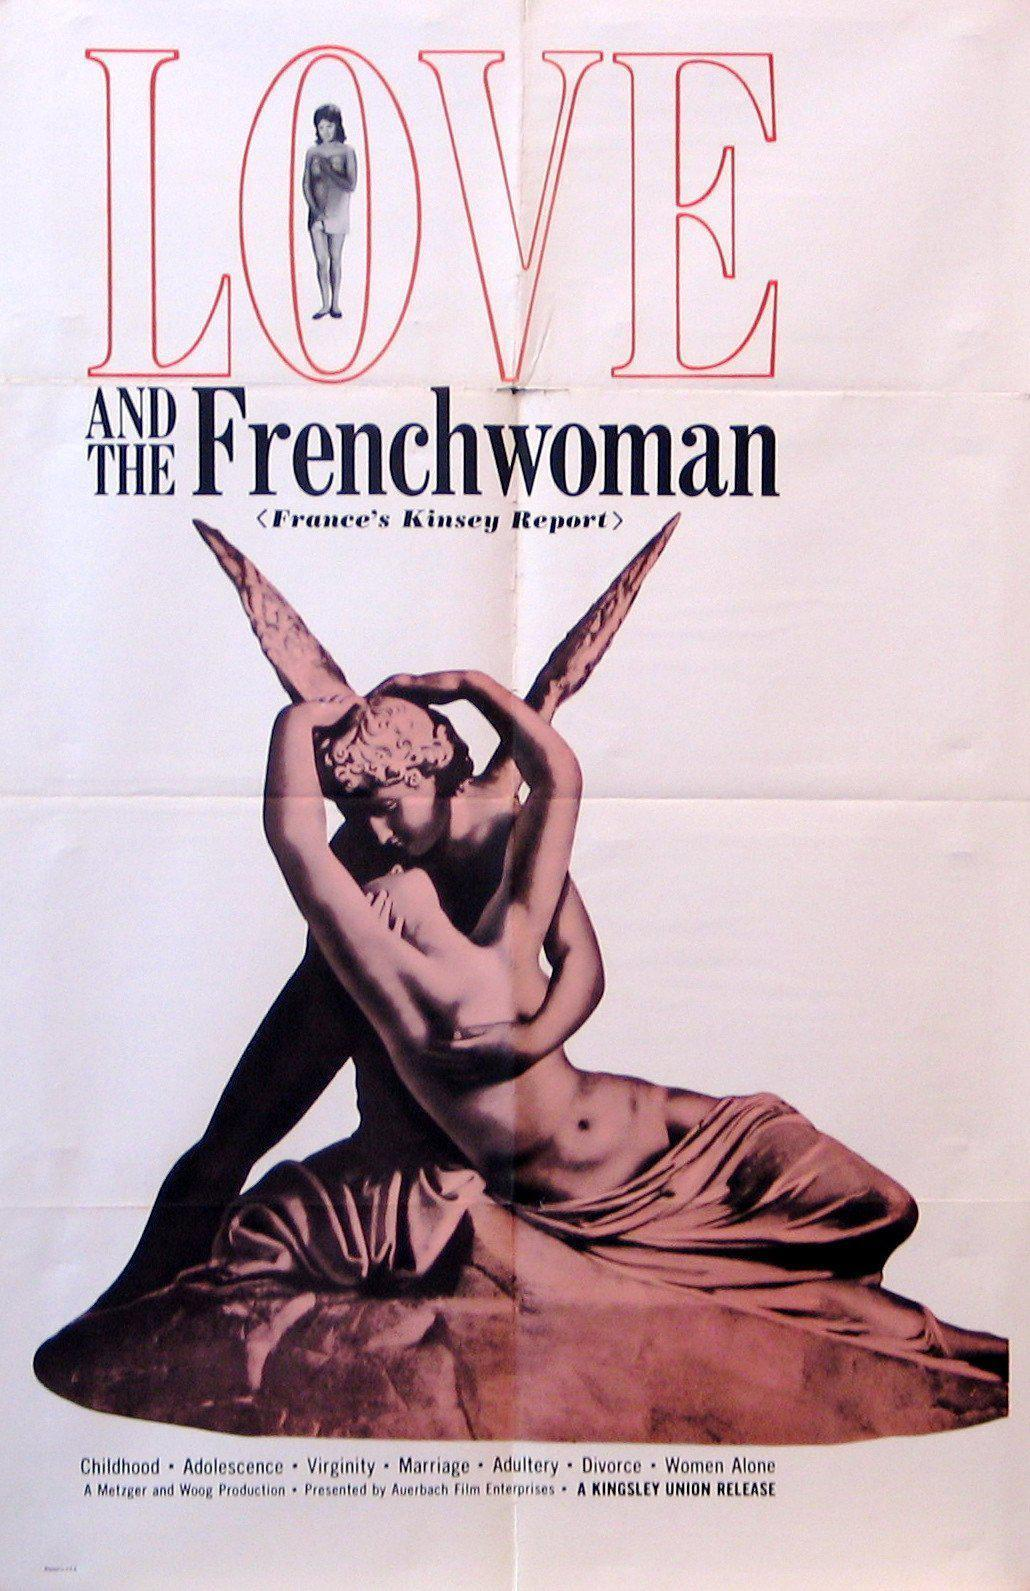 Love and the Frenchwoman 1 Sheet (27x41) Original Vintage Movie Poster